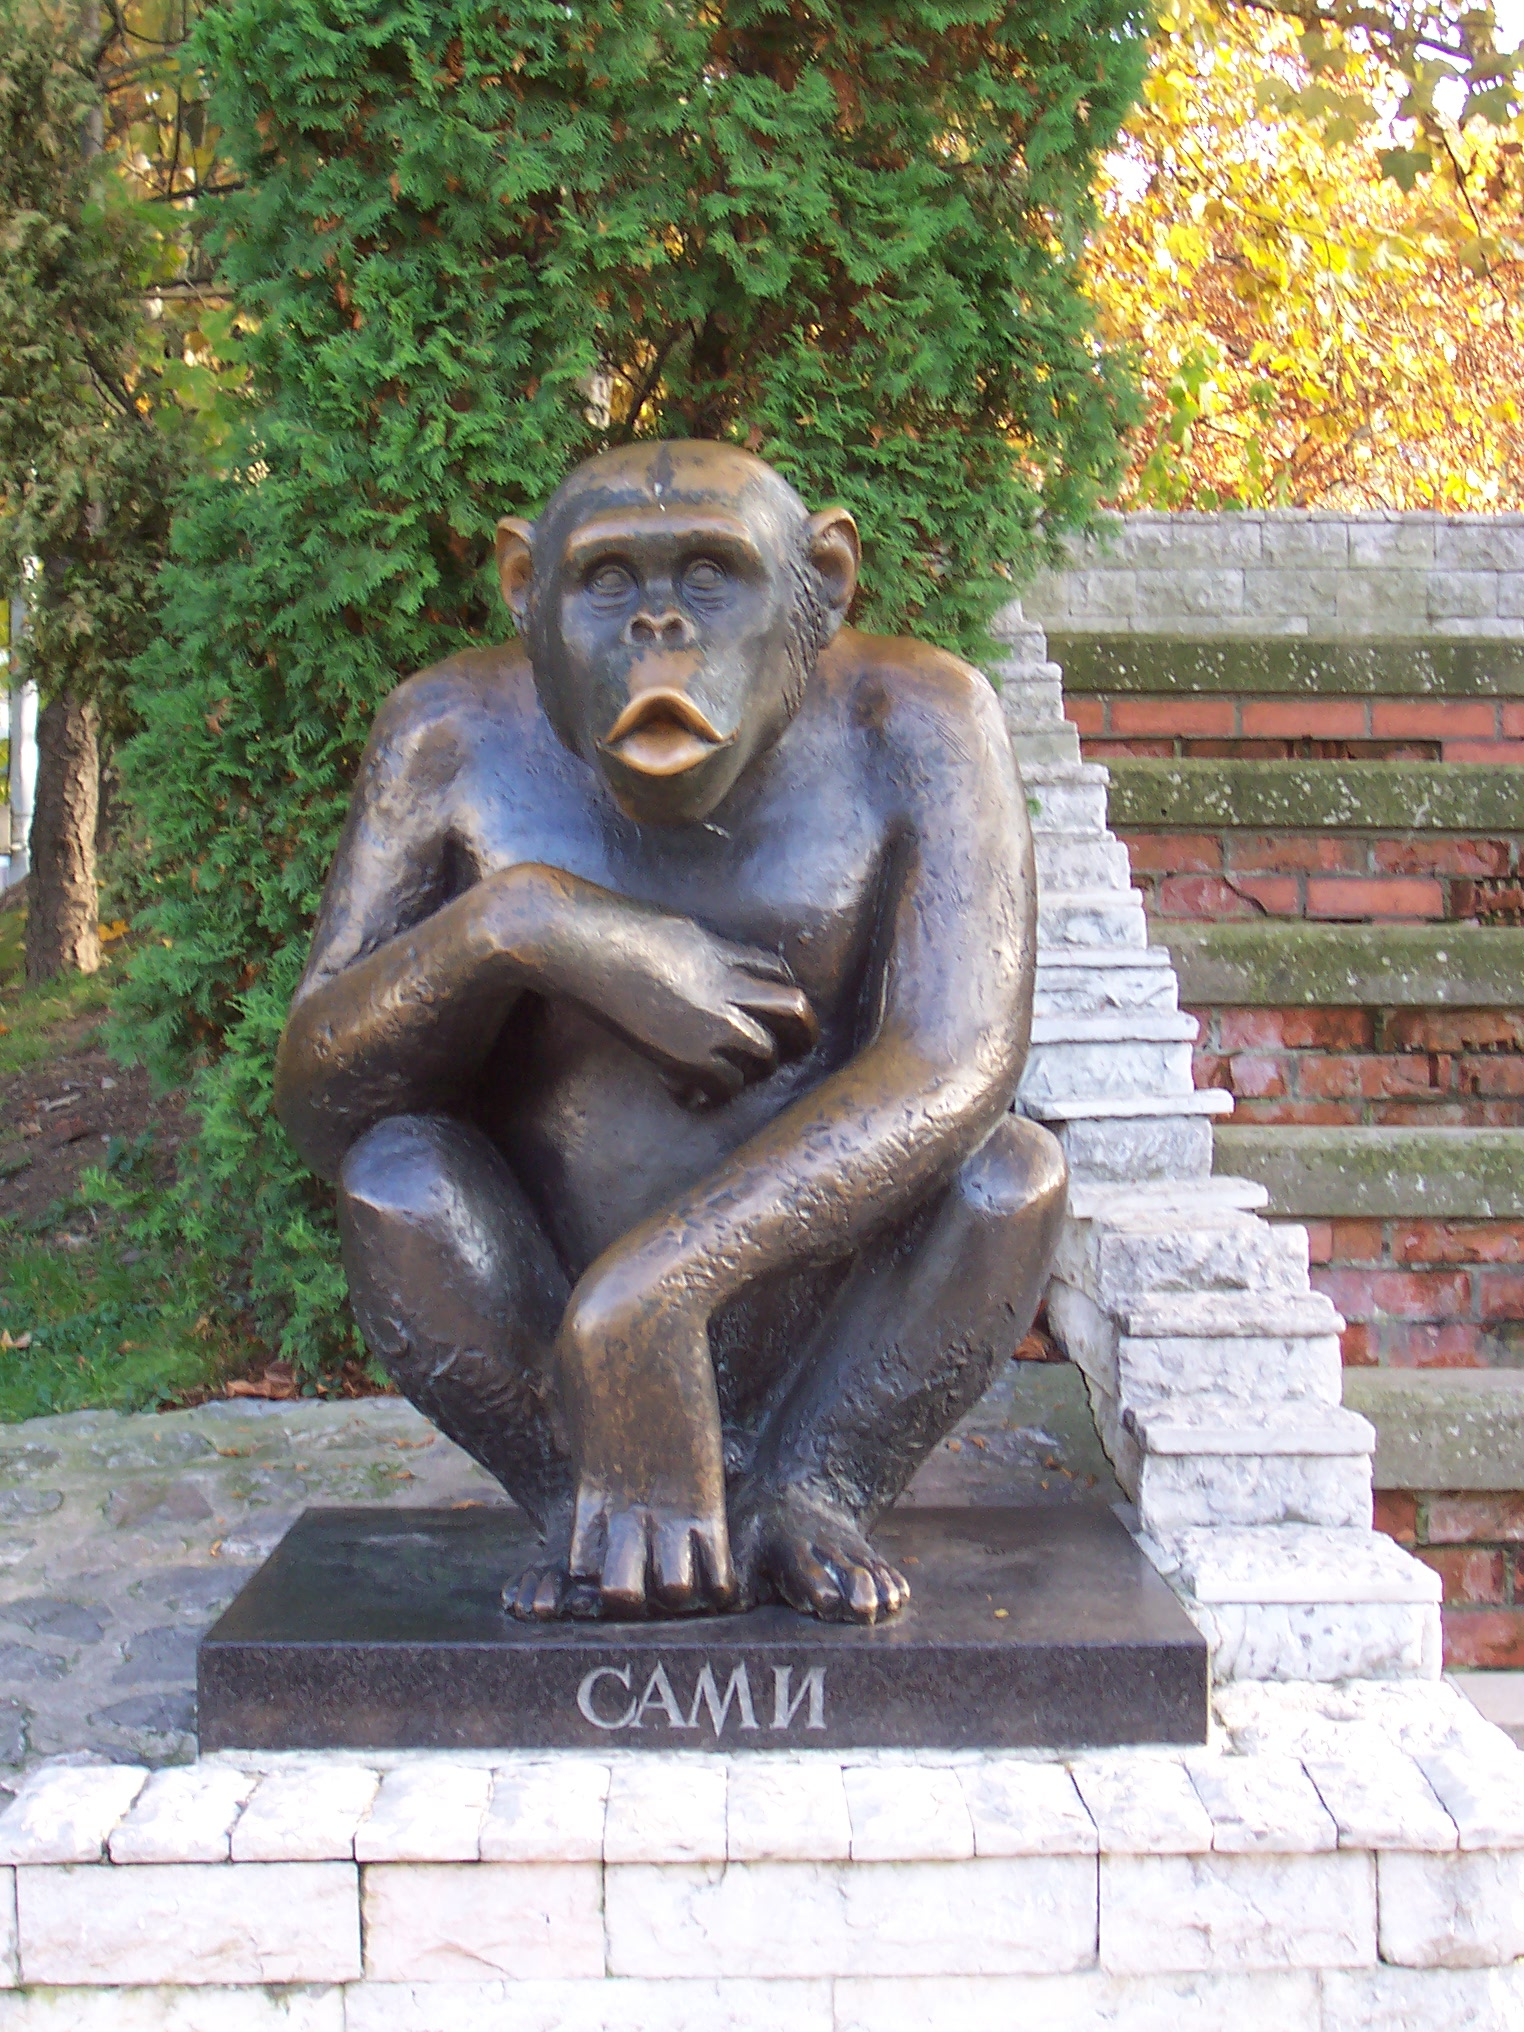 The Zoos homage to Sami, the good-natured chimp who escaped several times during the late 80s and soon became Belgrades adored mascot